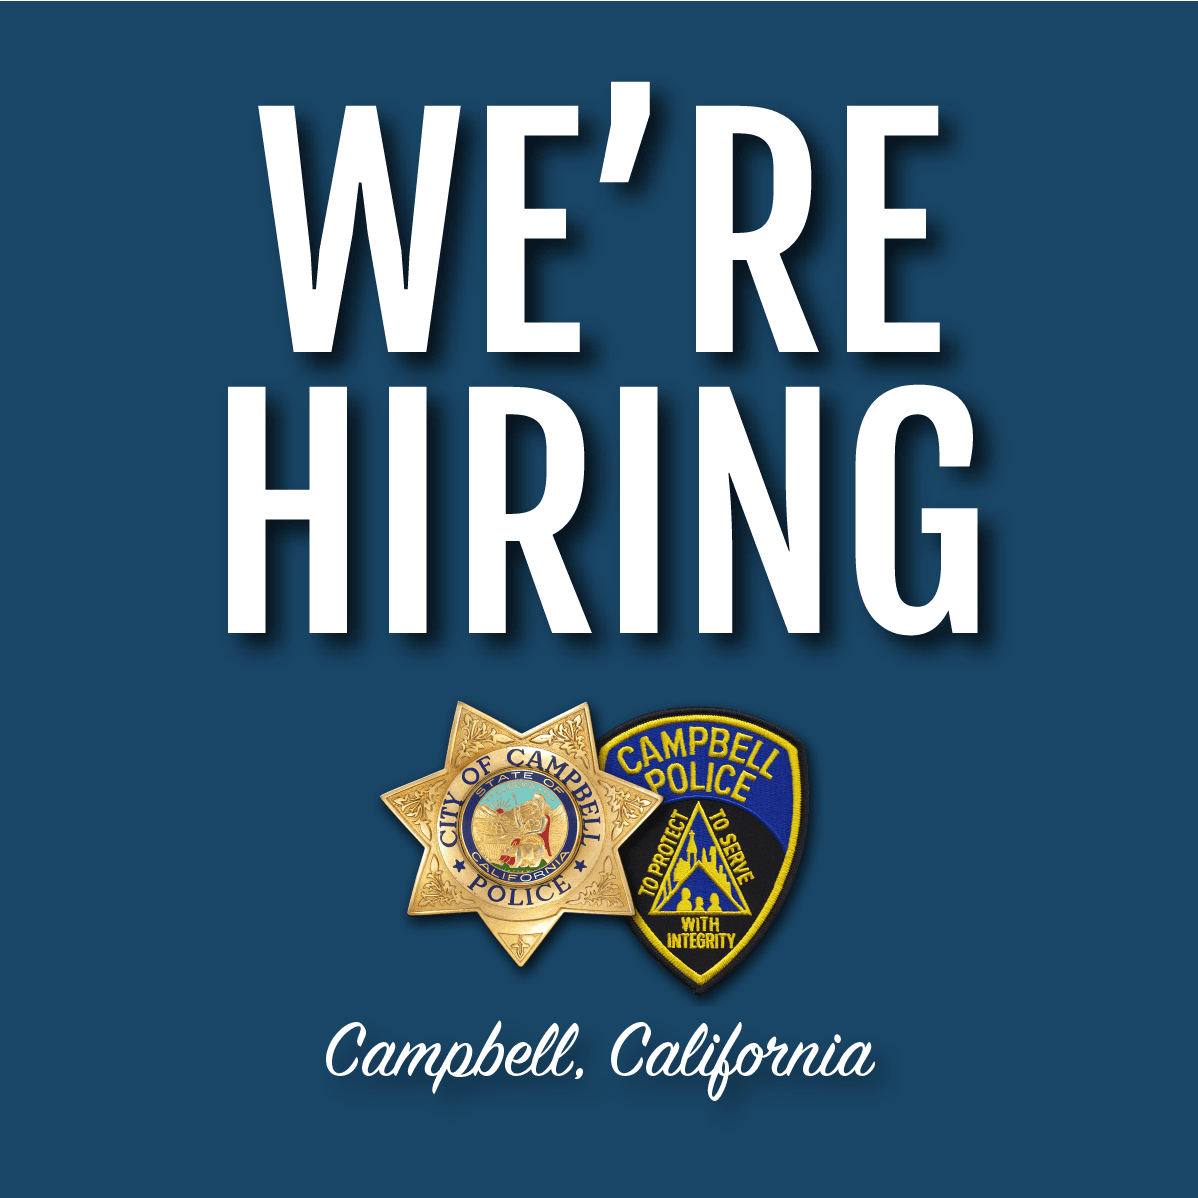 We're Hiring at the Police Department with department badge/patch logo.